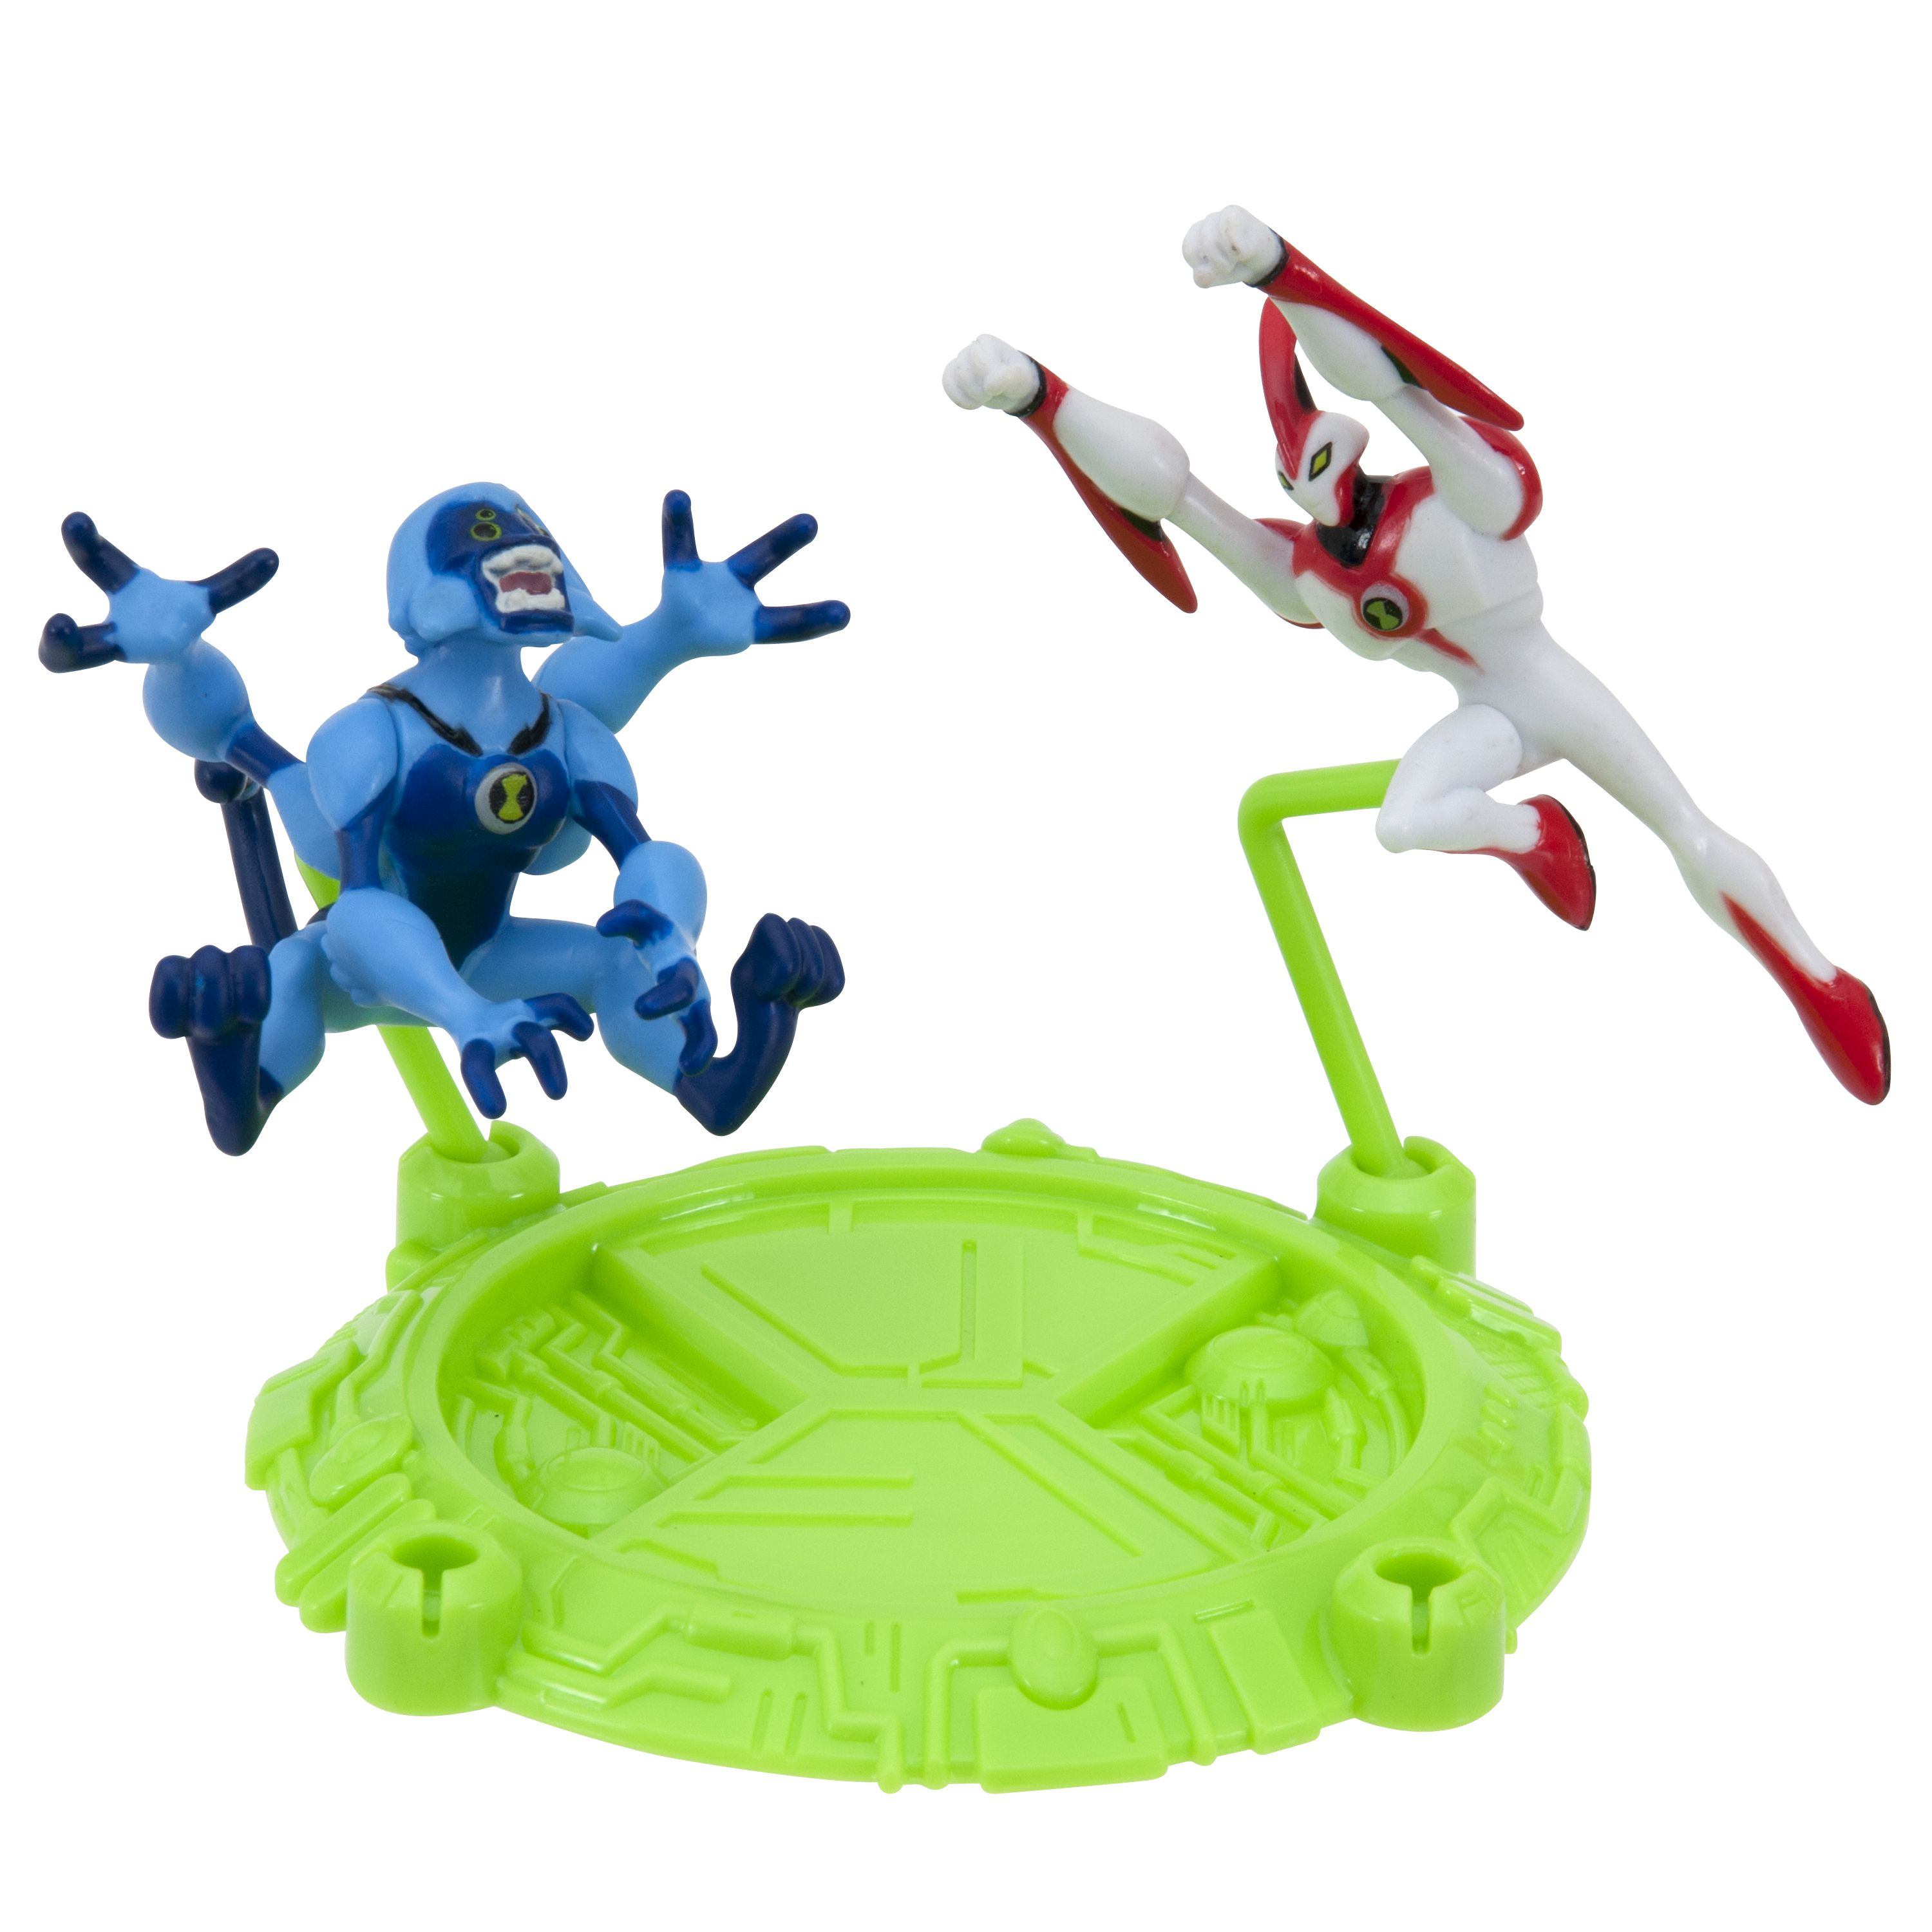 Fun 2 pack of Ben 10 action action figures